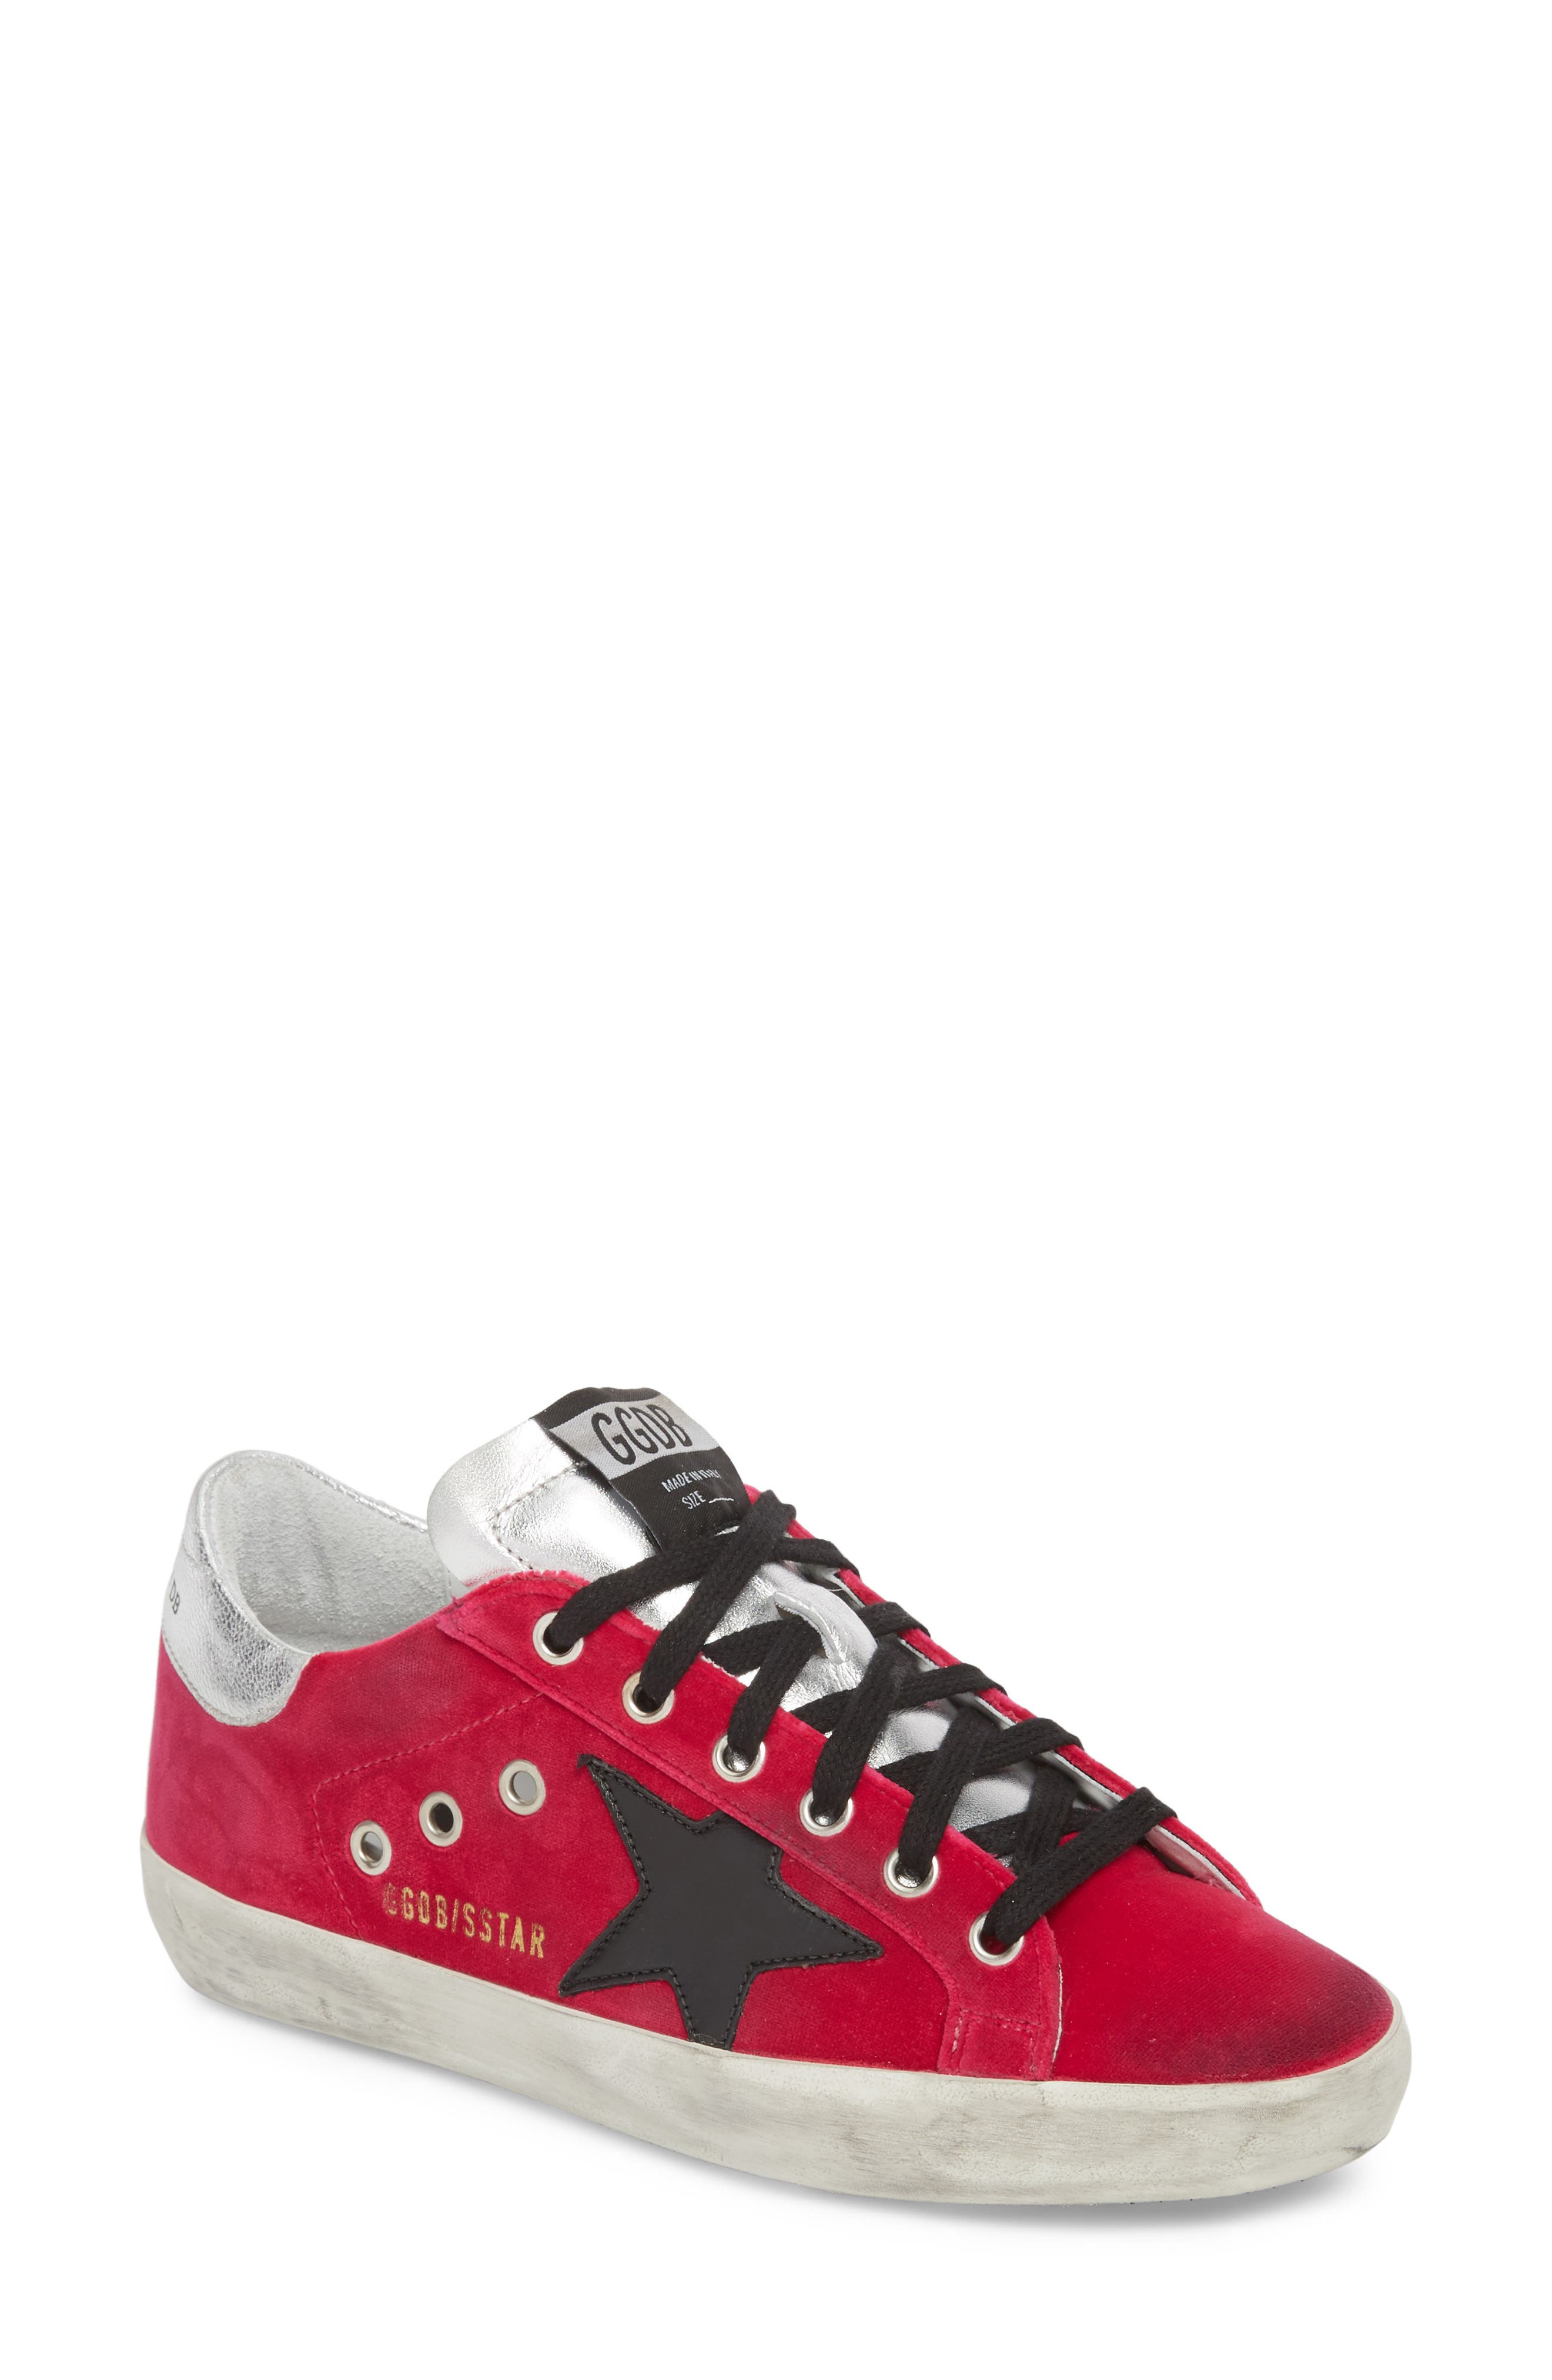 Superstar Low Top Sneaker,                         Main,                         color, FUCHSIA/ BLACK